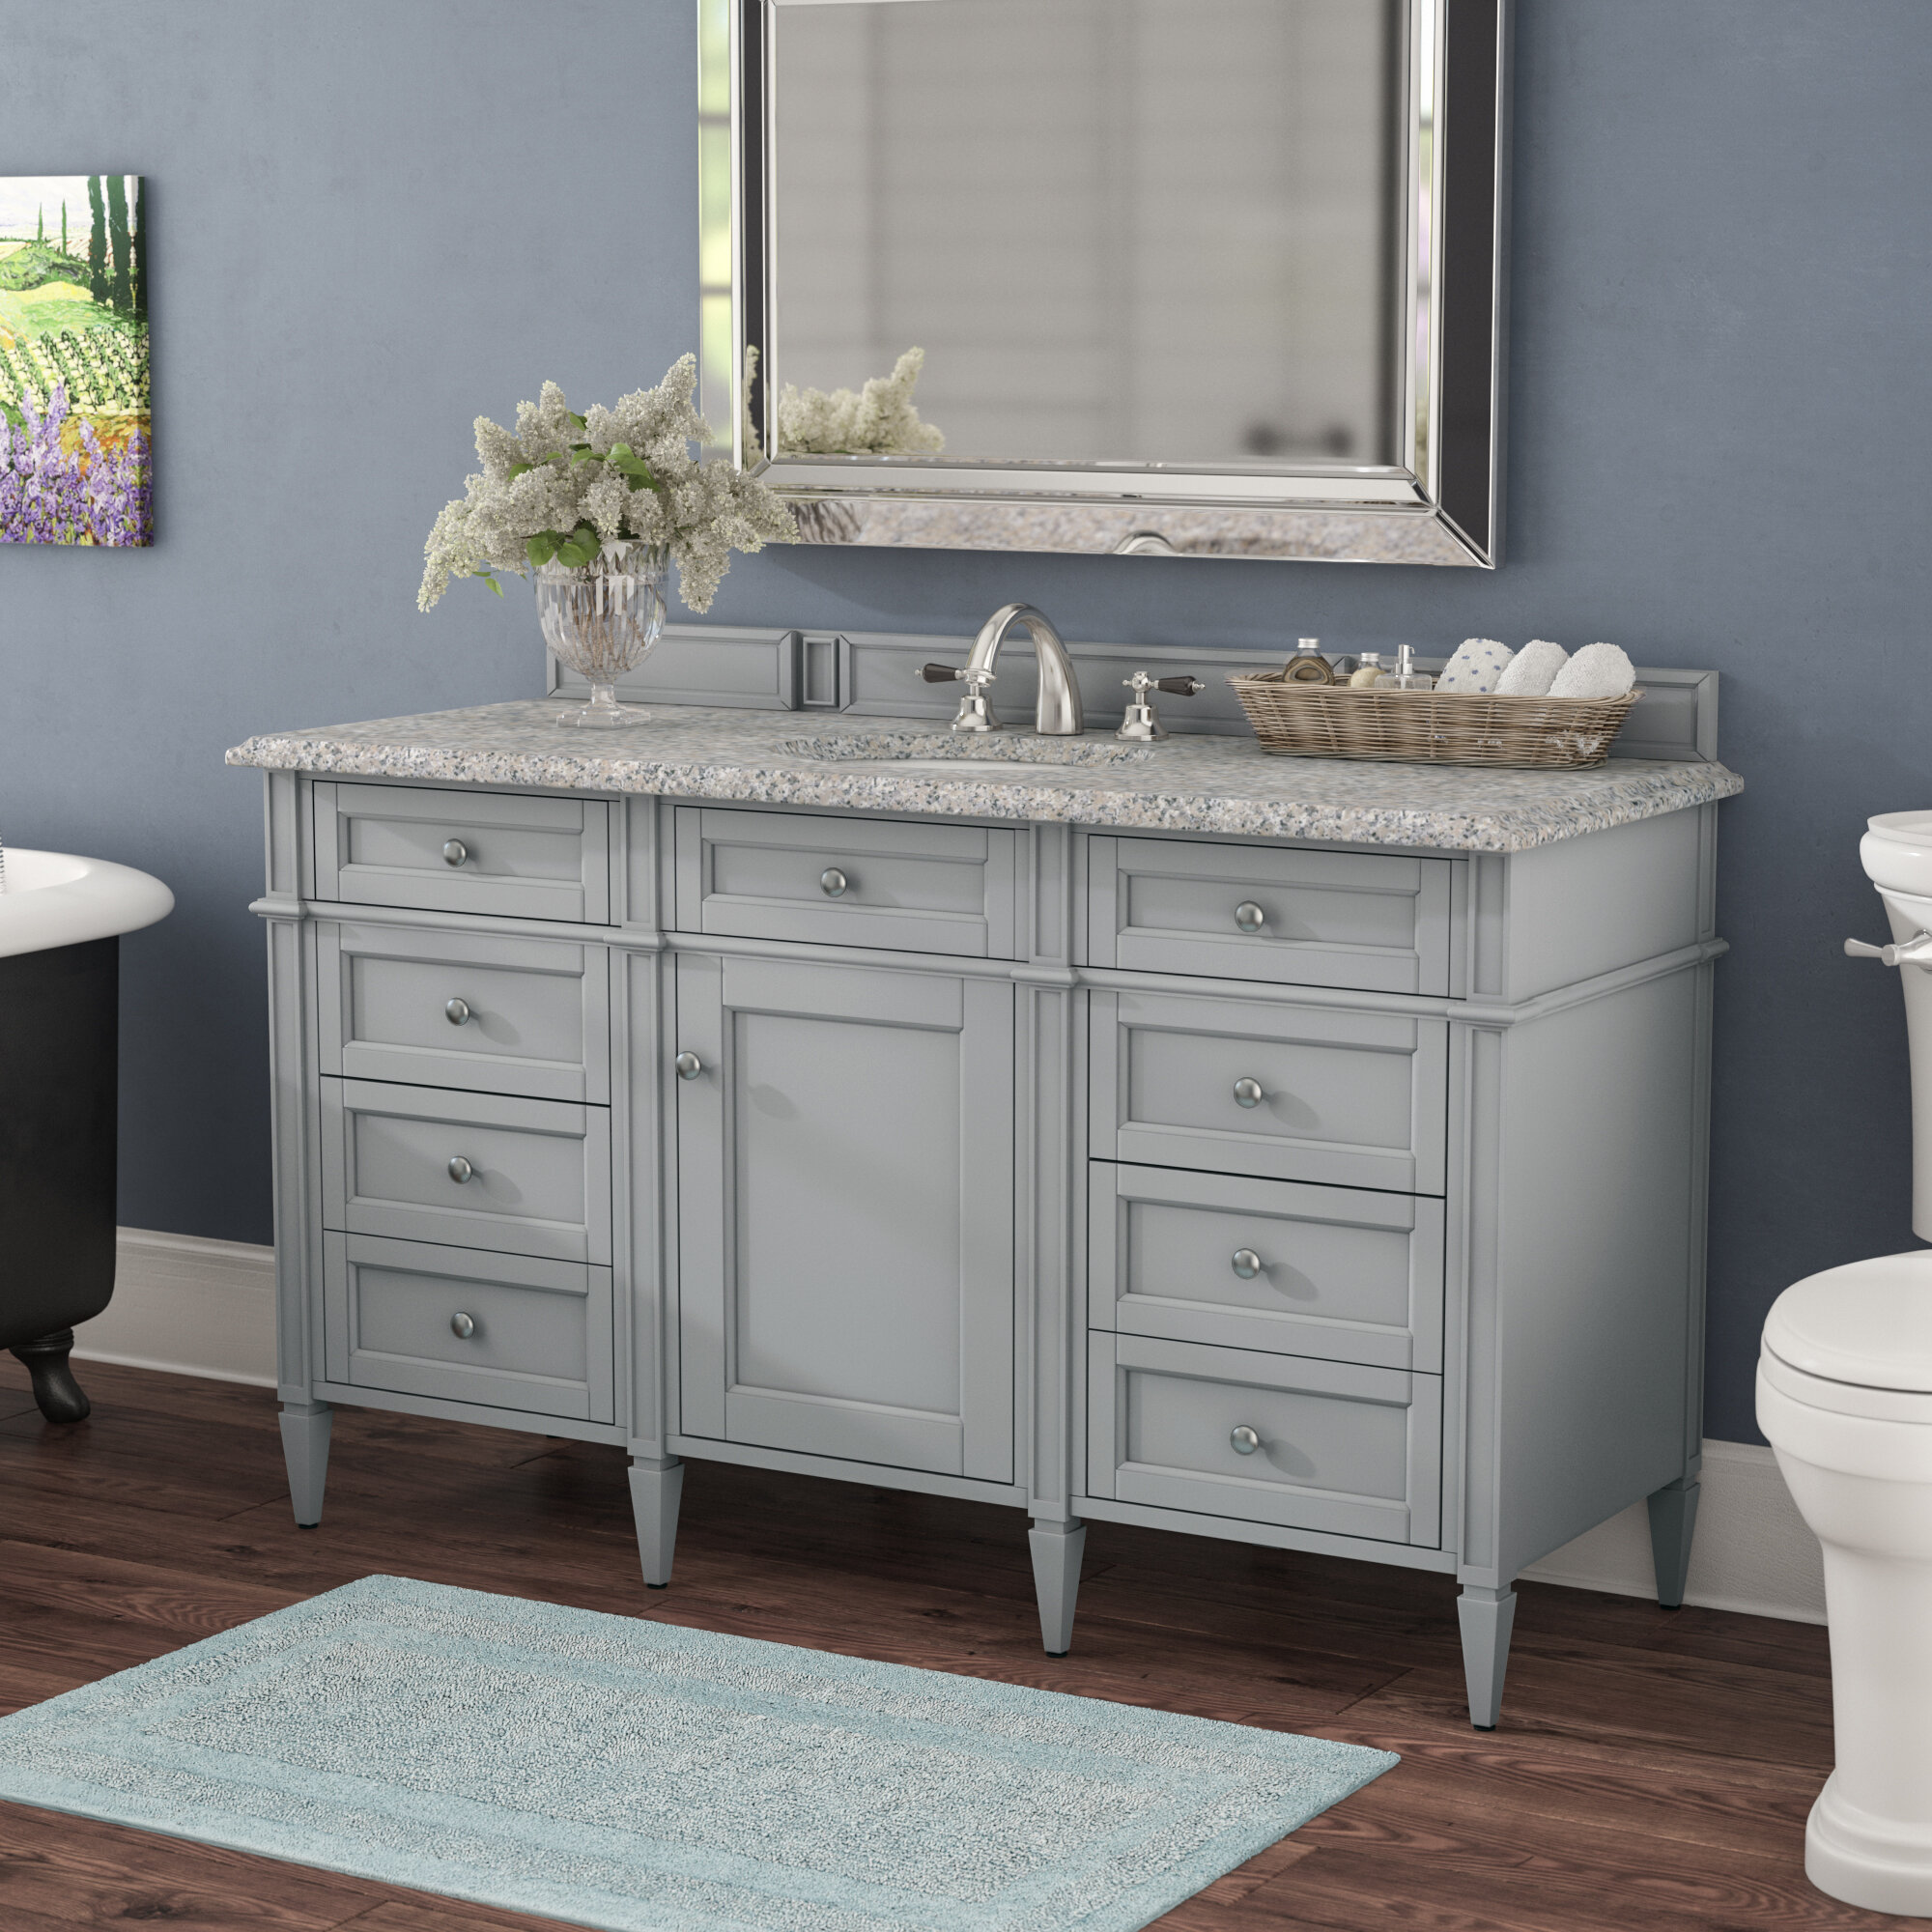 Darby Home Co Deleon 60 Single Urban Gray Stone Top Bathroom Vanity